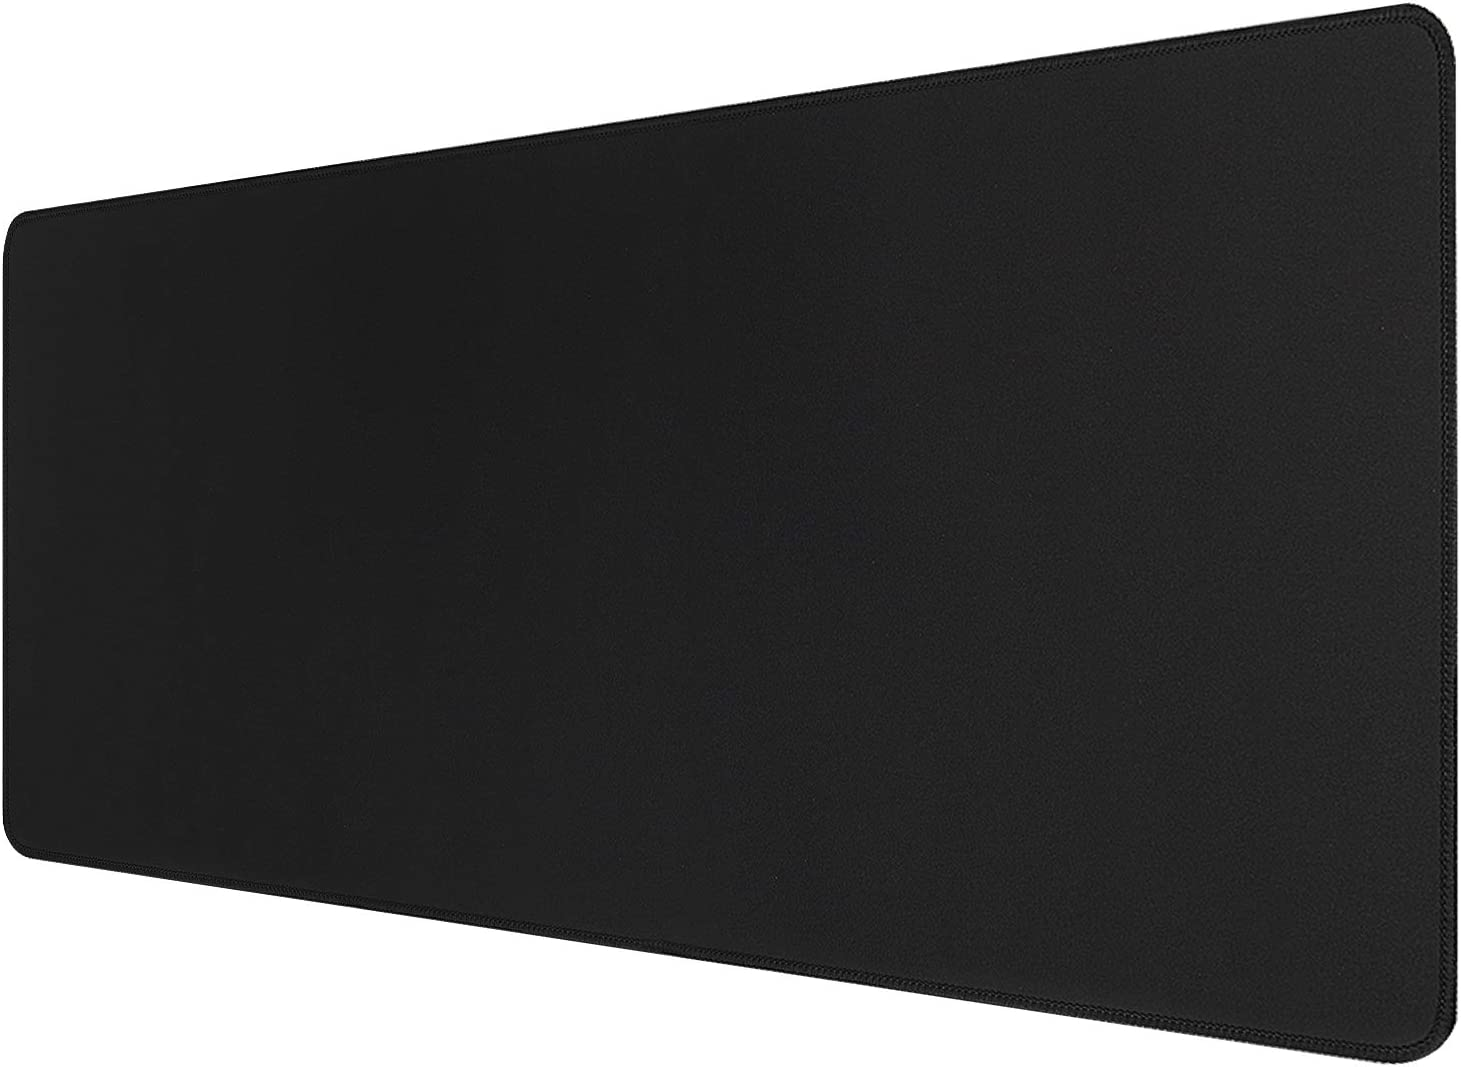 Extended Gaming Mouse Pad with Stitched Edges, Large Mousepad with Premium-Non-Slip Rubber Base, Waterproof Keyboard Pad Textured Cloth Mouse Mat for Gamer, Office & Home, 31.5x11.8 in, Black